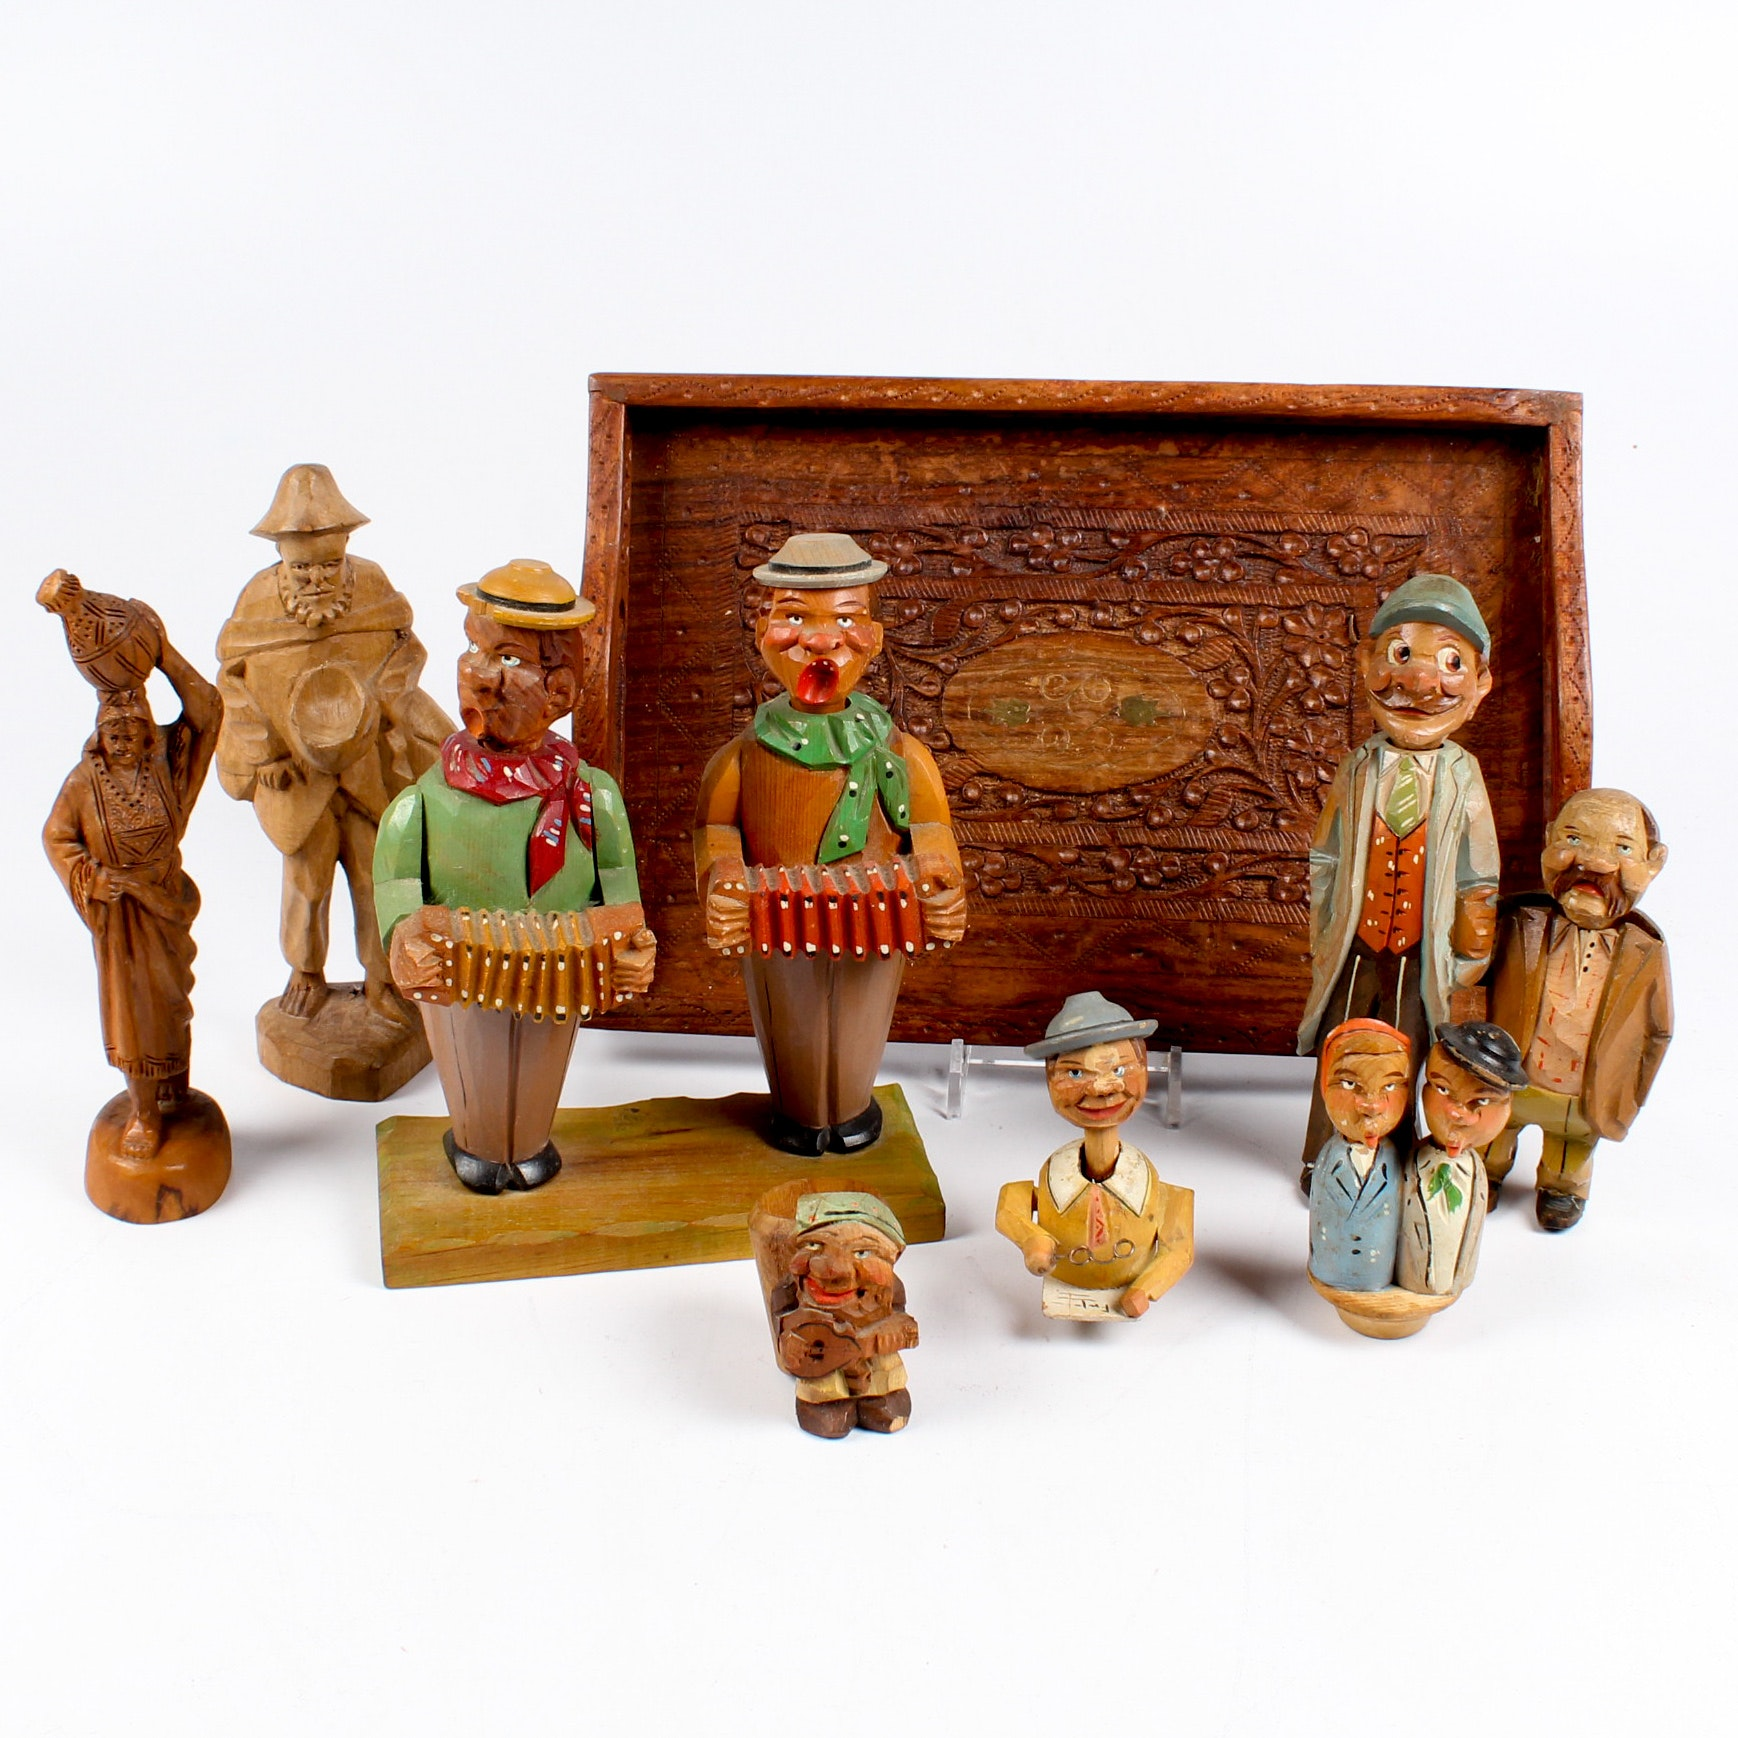 European Carved Wooden Figures and Bar Tools